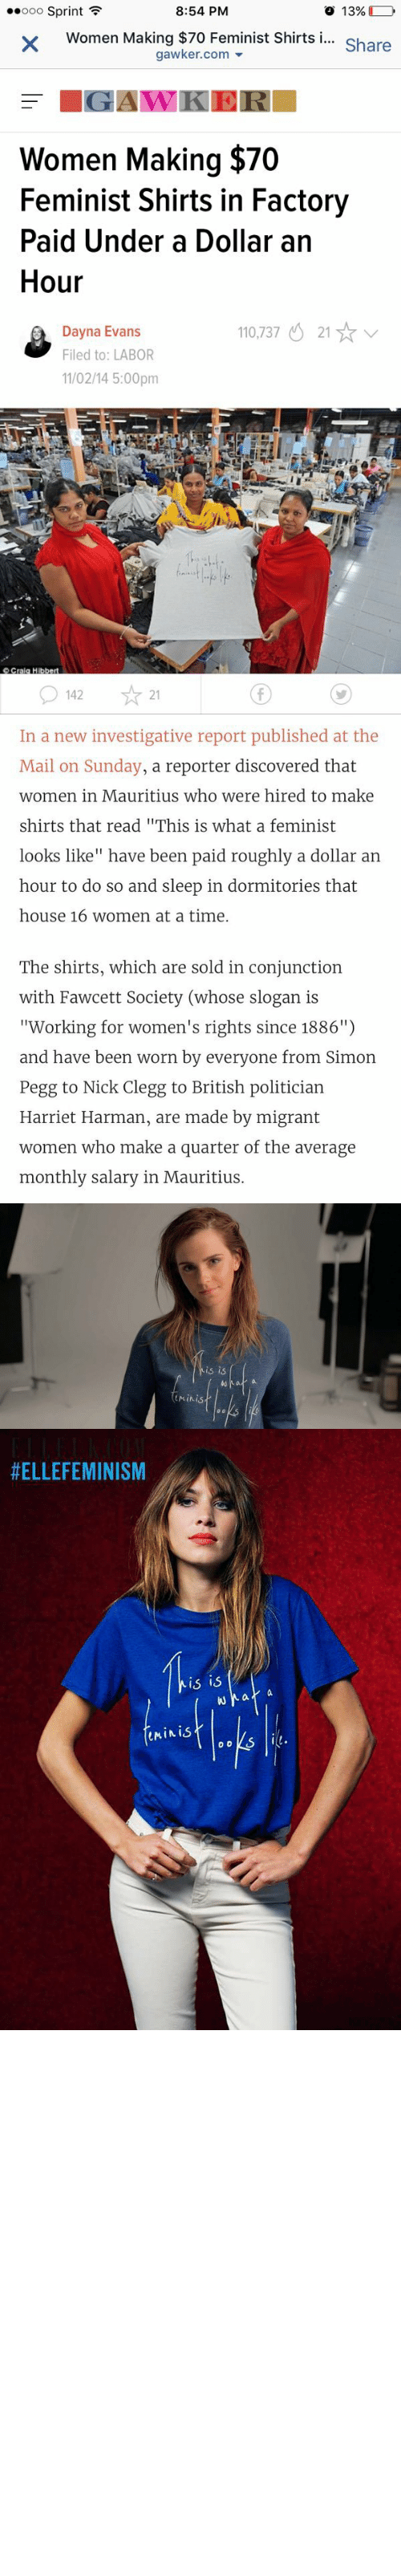 """Migrant: O 13% (  00000 Sprint ?  8:54 PM  Women Making $70 Feminist Shirts i...  gawker.com -  Share  = IGAWKER  Women Making $70  Feminist Shirts in Factory  Paid Under a Dollar an  Hour  110,737 O 21 * v  Dayna Evans  Filed to: LABOR  11/02/14 5:00pm  OCrala Hibbert  ☆ 21  O 142   In a new investigative report published at the  Mail on Sunday, a reporter discovered that  women in Mauritius who were hired to make  shirts that read """"This is what a feminist  looks like"""" have been paid roughly a dollar an  hour to do so and sleep in dormitories that  house 16 women at a time.  The shirts, which are sold in conjunction  with Fawcett Society (whose slogan is  """"Working for women's rights since 1886"""")  and have been worn by everyone from Simon  Pegg to Nick Clegg to British politician  Harriet Harman, are made by migrant  women who make a quarter of the average  monthly salary in Mauritius.   is  Minist   #ELLEFEMINISM  The  is is  feminis. mashallahsis:   bryabia:  dicksandwhiches:  mysharona1987:  Just a hunch: but I don't think this is what feminism is meant to look like. fromhttps://twitter.com/sadieeehdz  Sadly, this is what feminist look like occasionally. White women profiting from the oppression of WOC.  ^^^^^very much accurate  Thas white feminism for u :^)"""